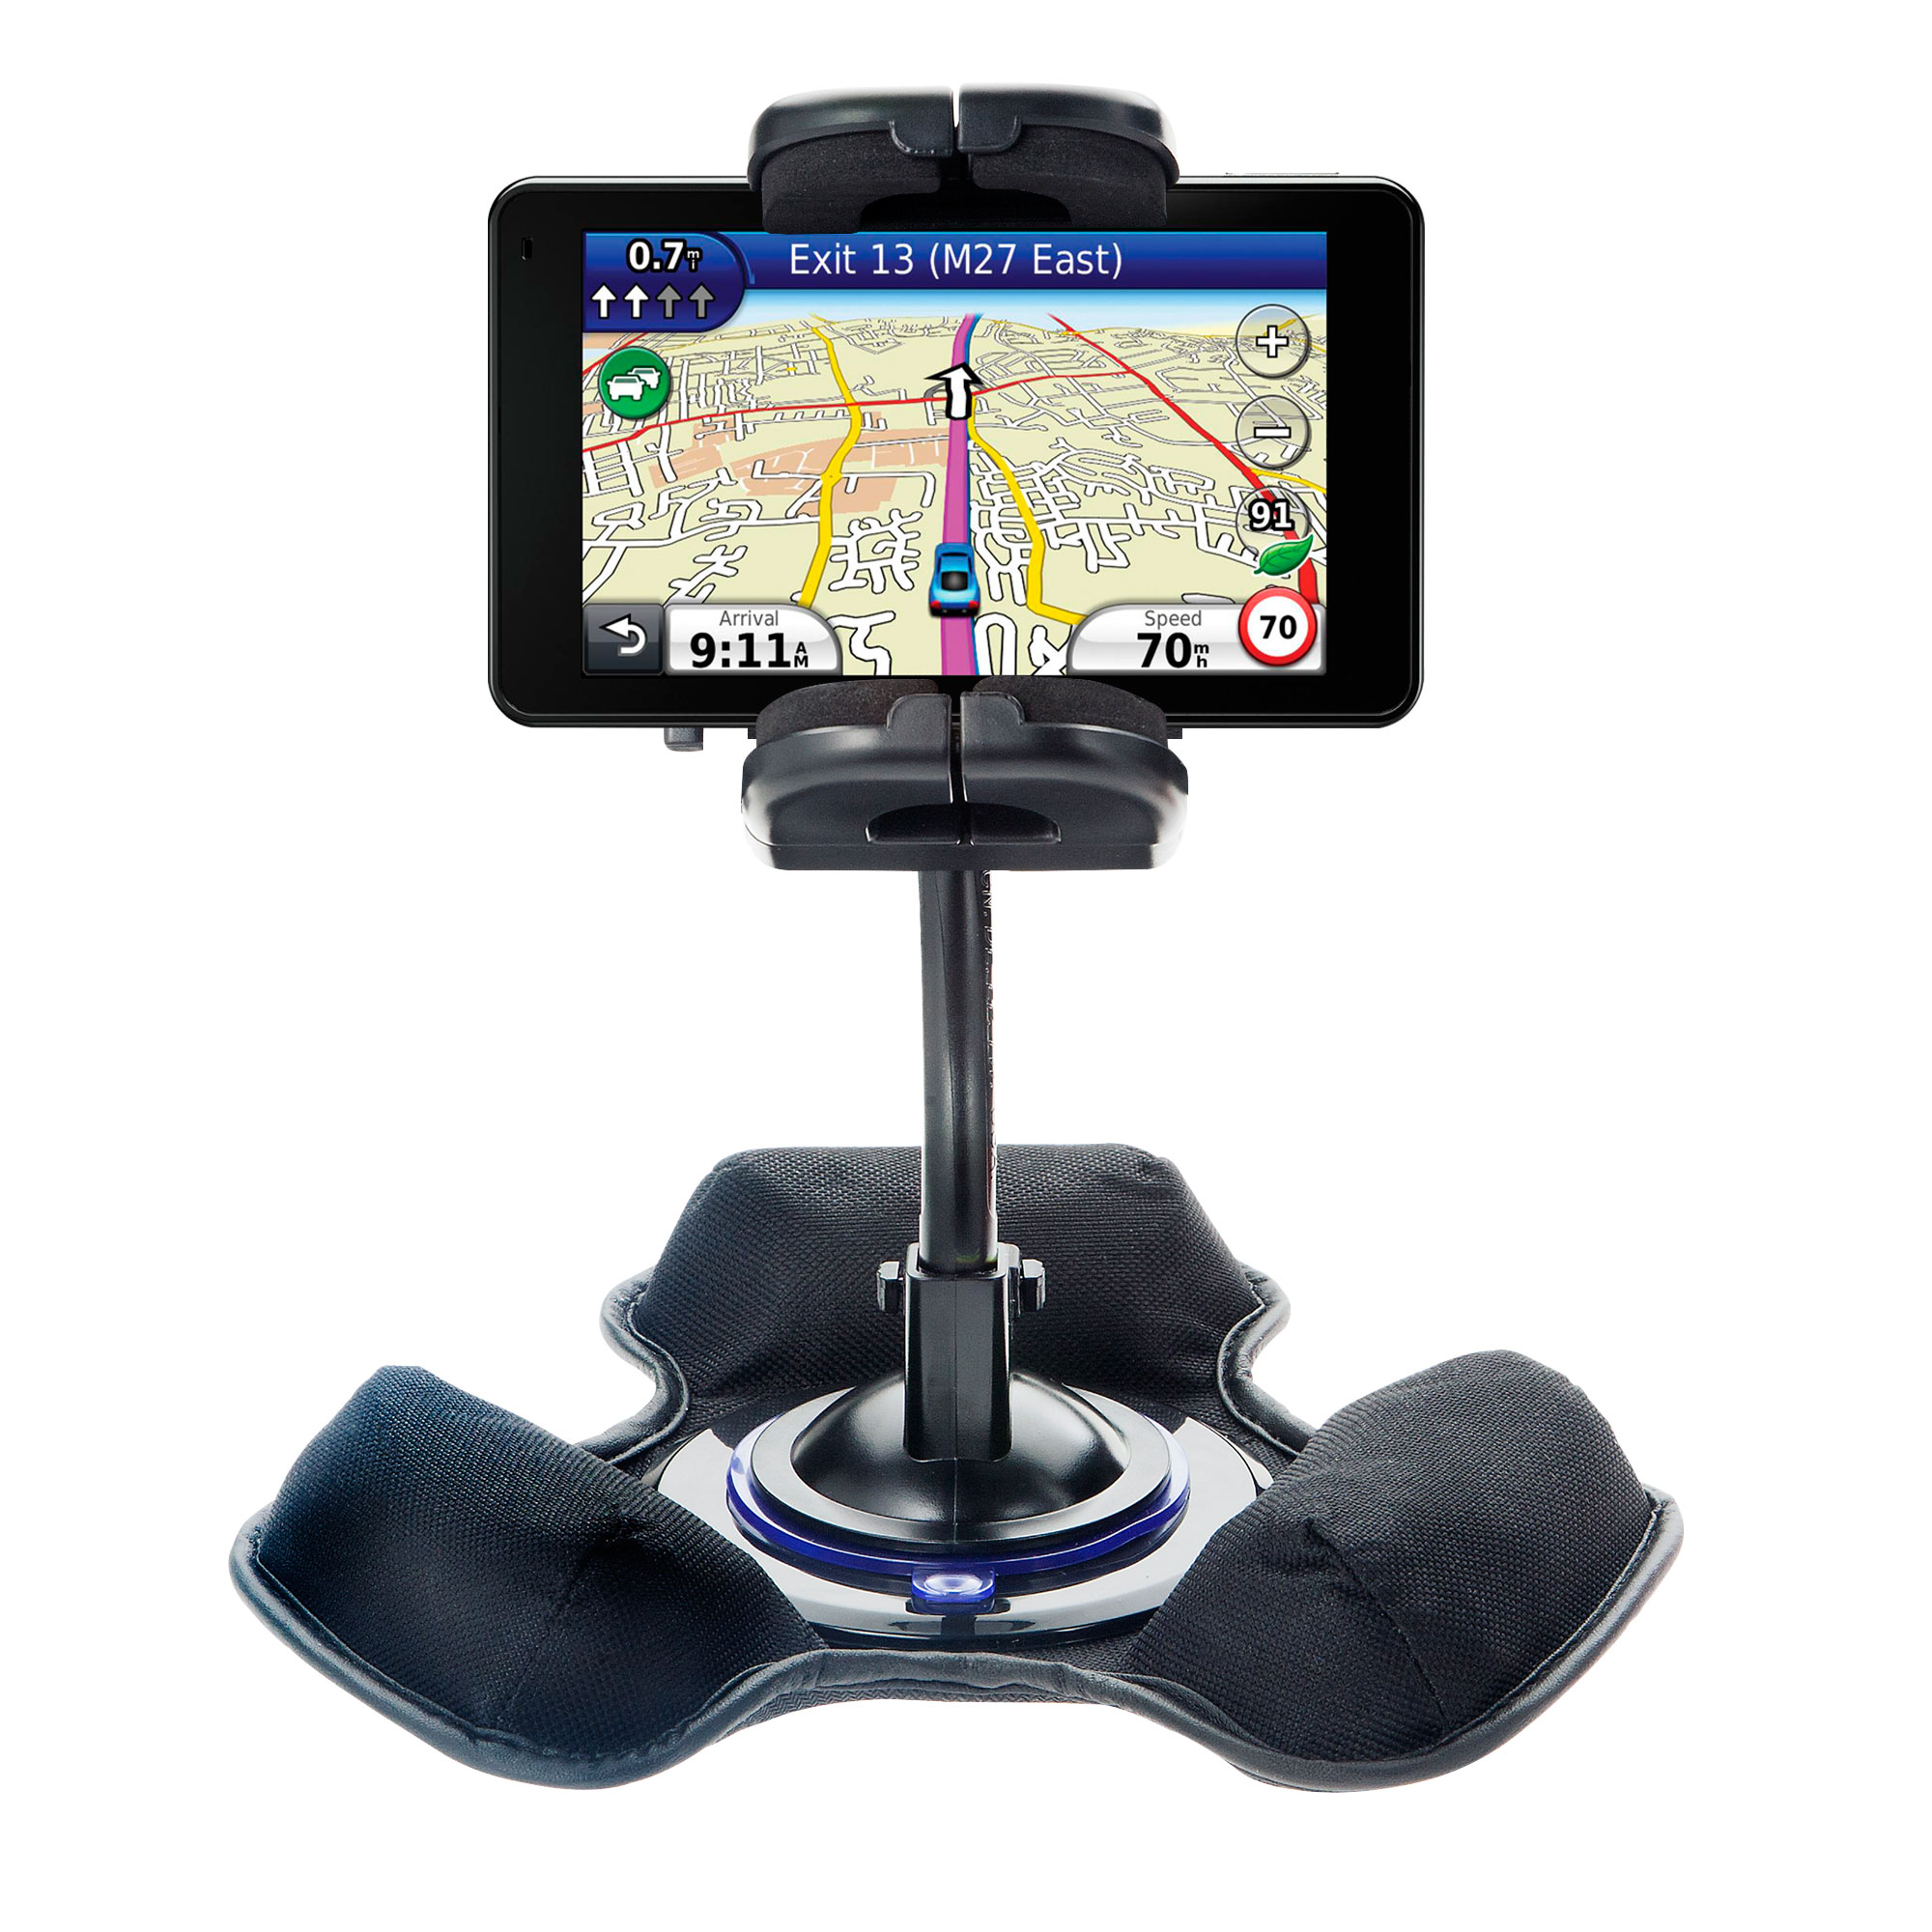 Dash and Windshield Holder compatible with the Garmin Nuvi 3790T 3790LMT